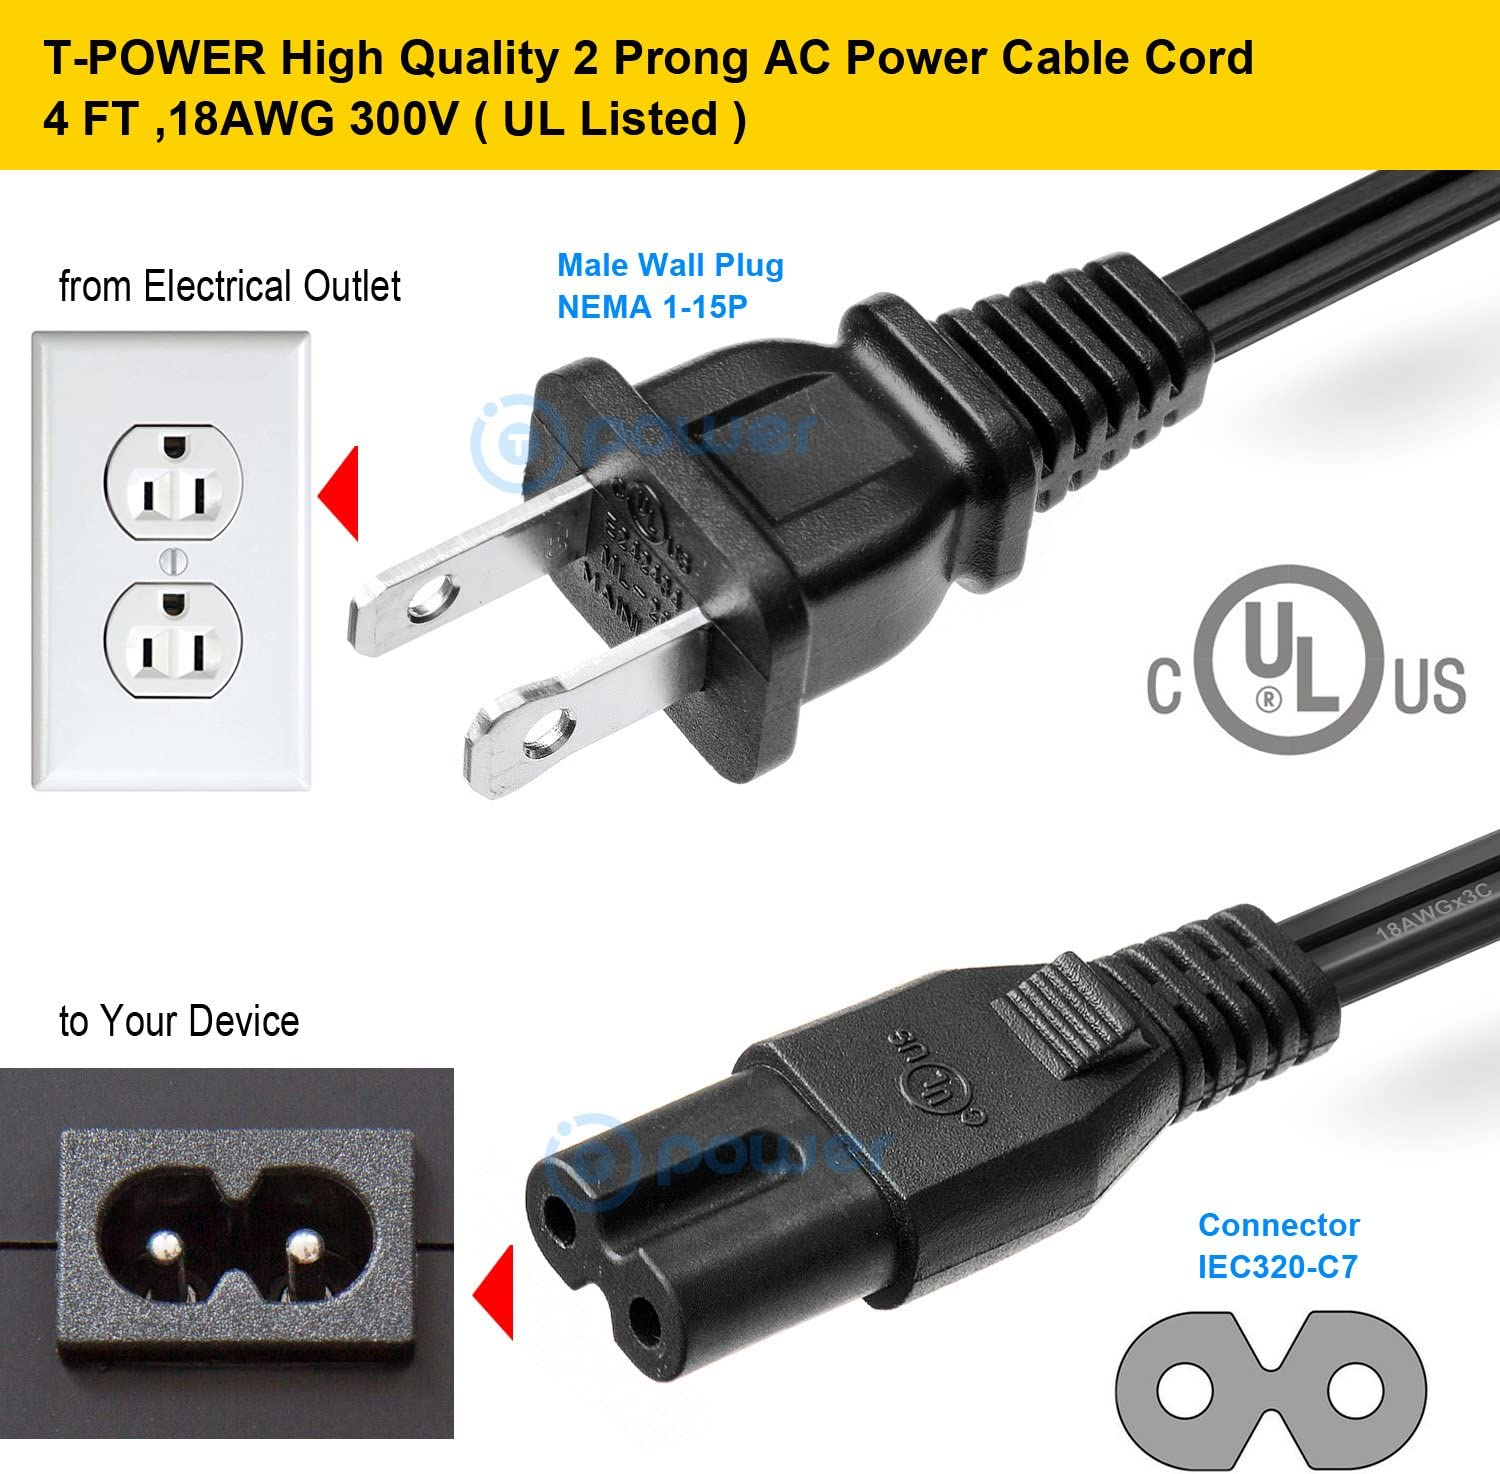 OMNIHIL 15 Feet Long AC Power Cord Compatible with VANKYO Leisure 410 UL Listed